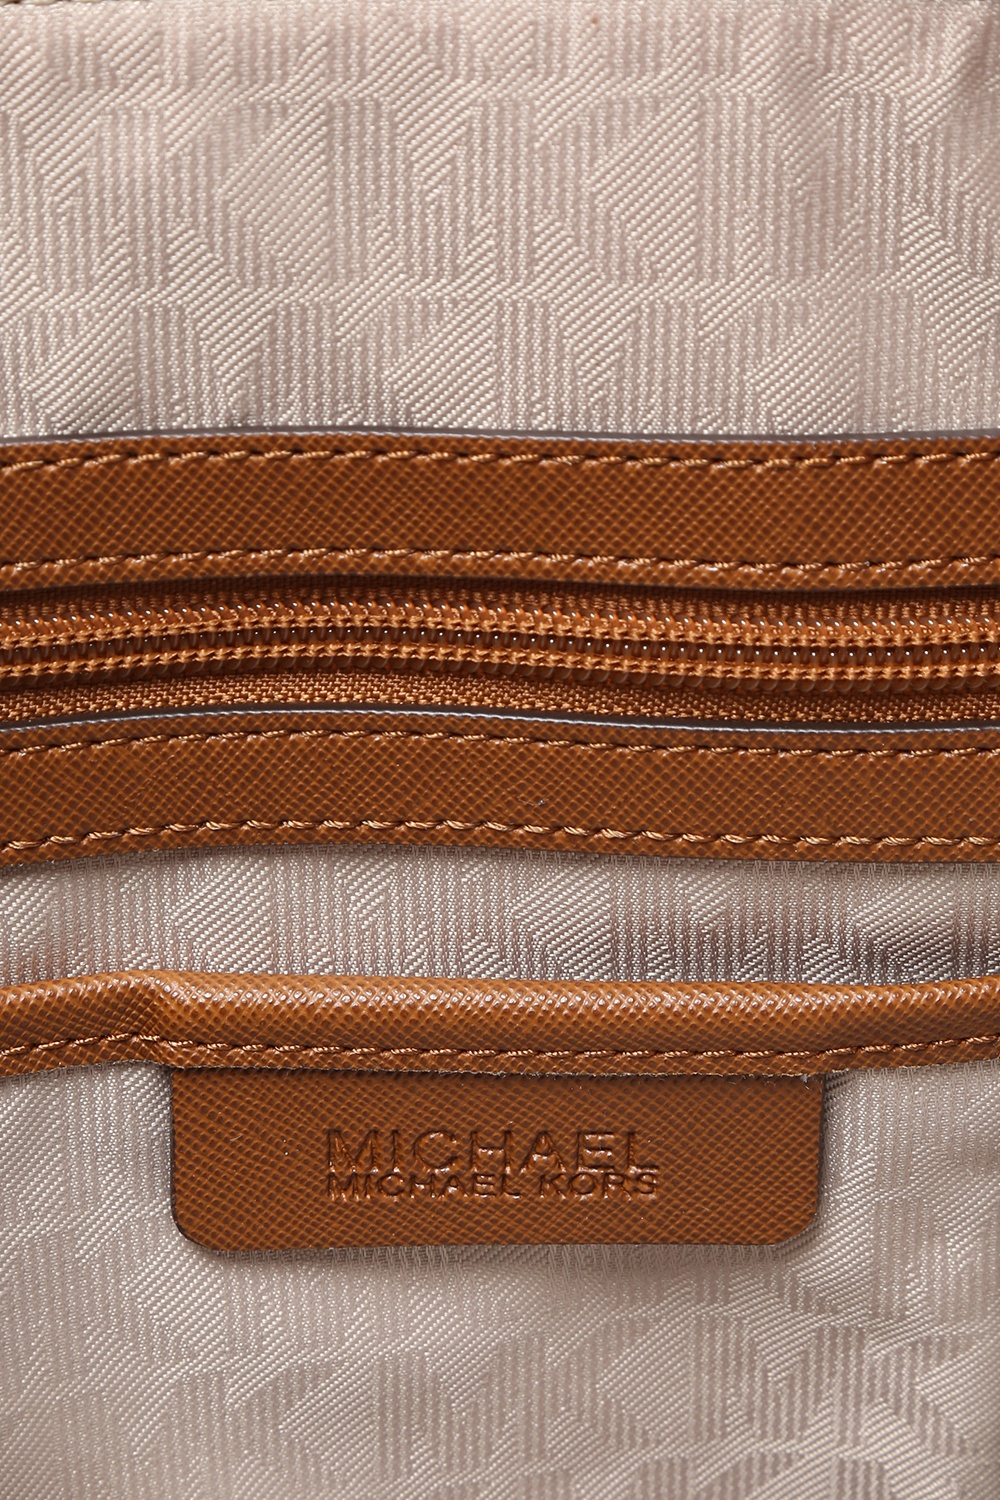 Michael Michael Kors 'Jet Set Item' leather shoulder bag